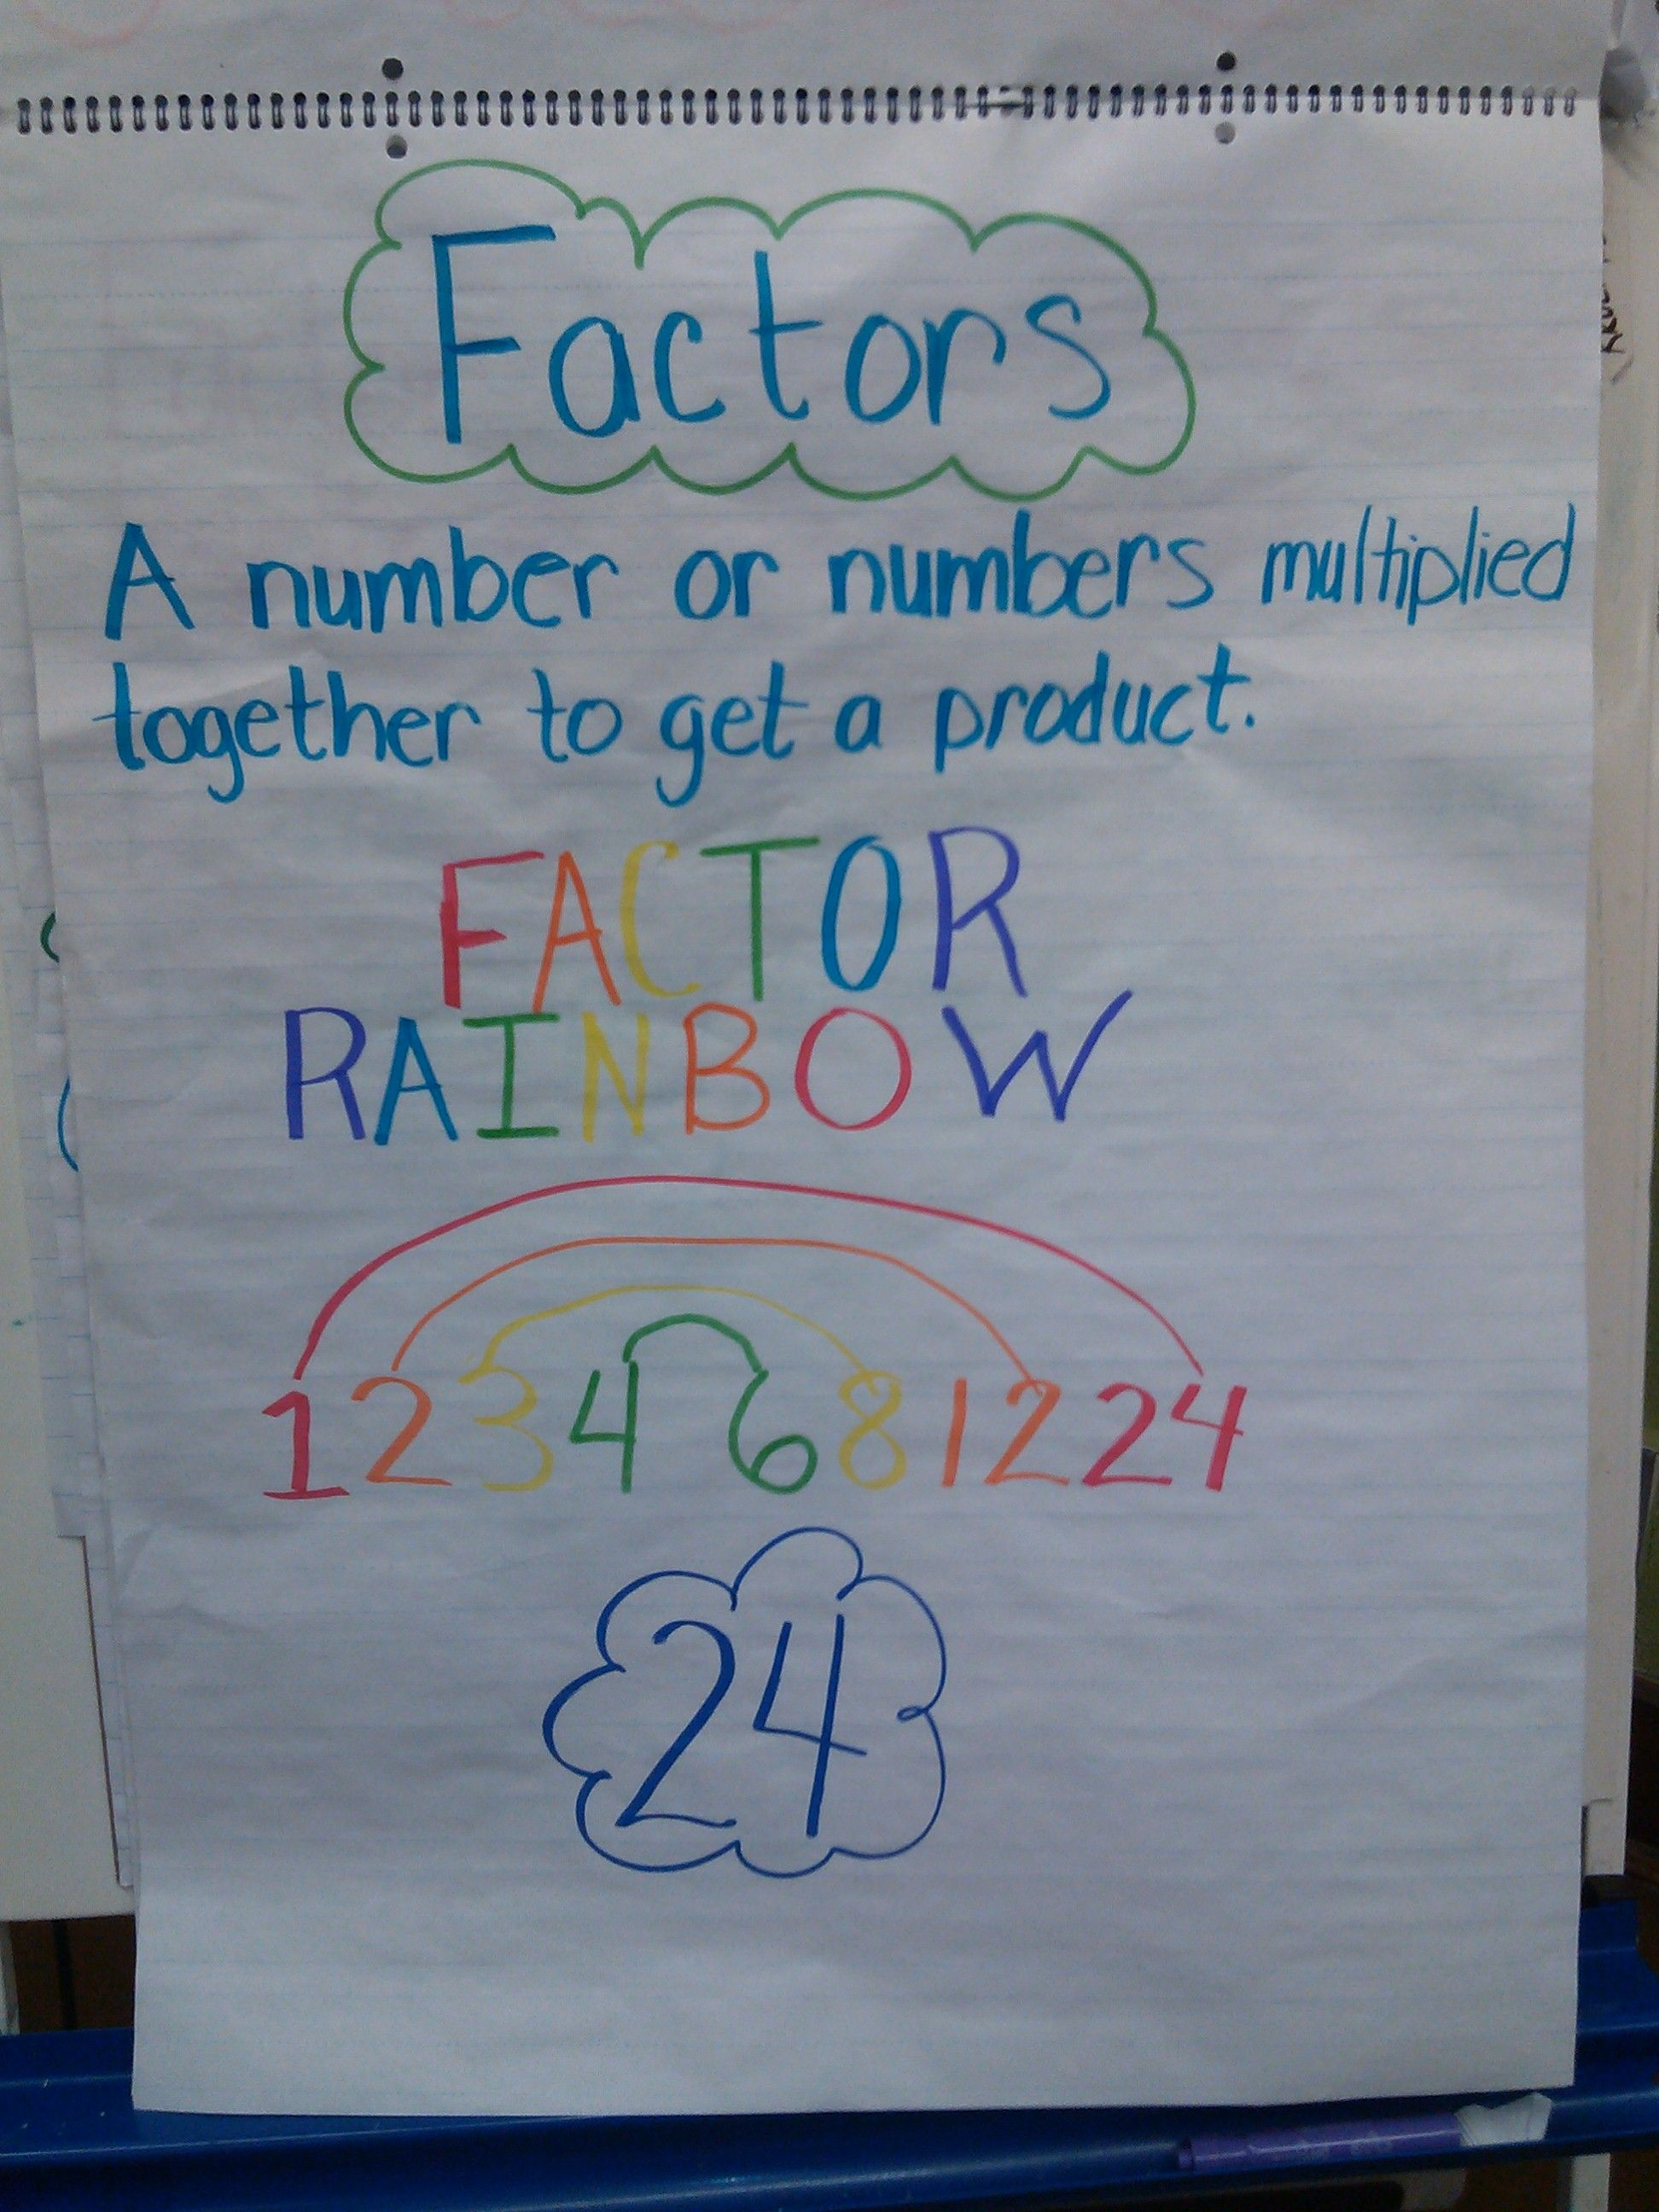 Factoring Worksheets together with Prime   posite  Squares   Factors also Factoring Worksheets likewise Factoring Worksheets moreover Factors Worksheets   Printable Factors and Multiples Worksheets besides  further Divisibility Worksheets 6th Grade   Criabooks   Criabooks further  additionally Worksheets On Factors And Multiplesksheet Primes Prime Numbers also  also Fill in the Factor Tree   Worksheet   Education. on factor rainbow math worksheets